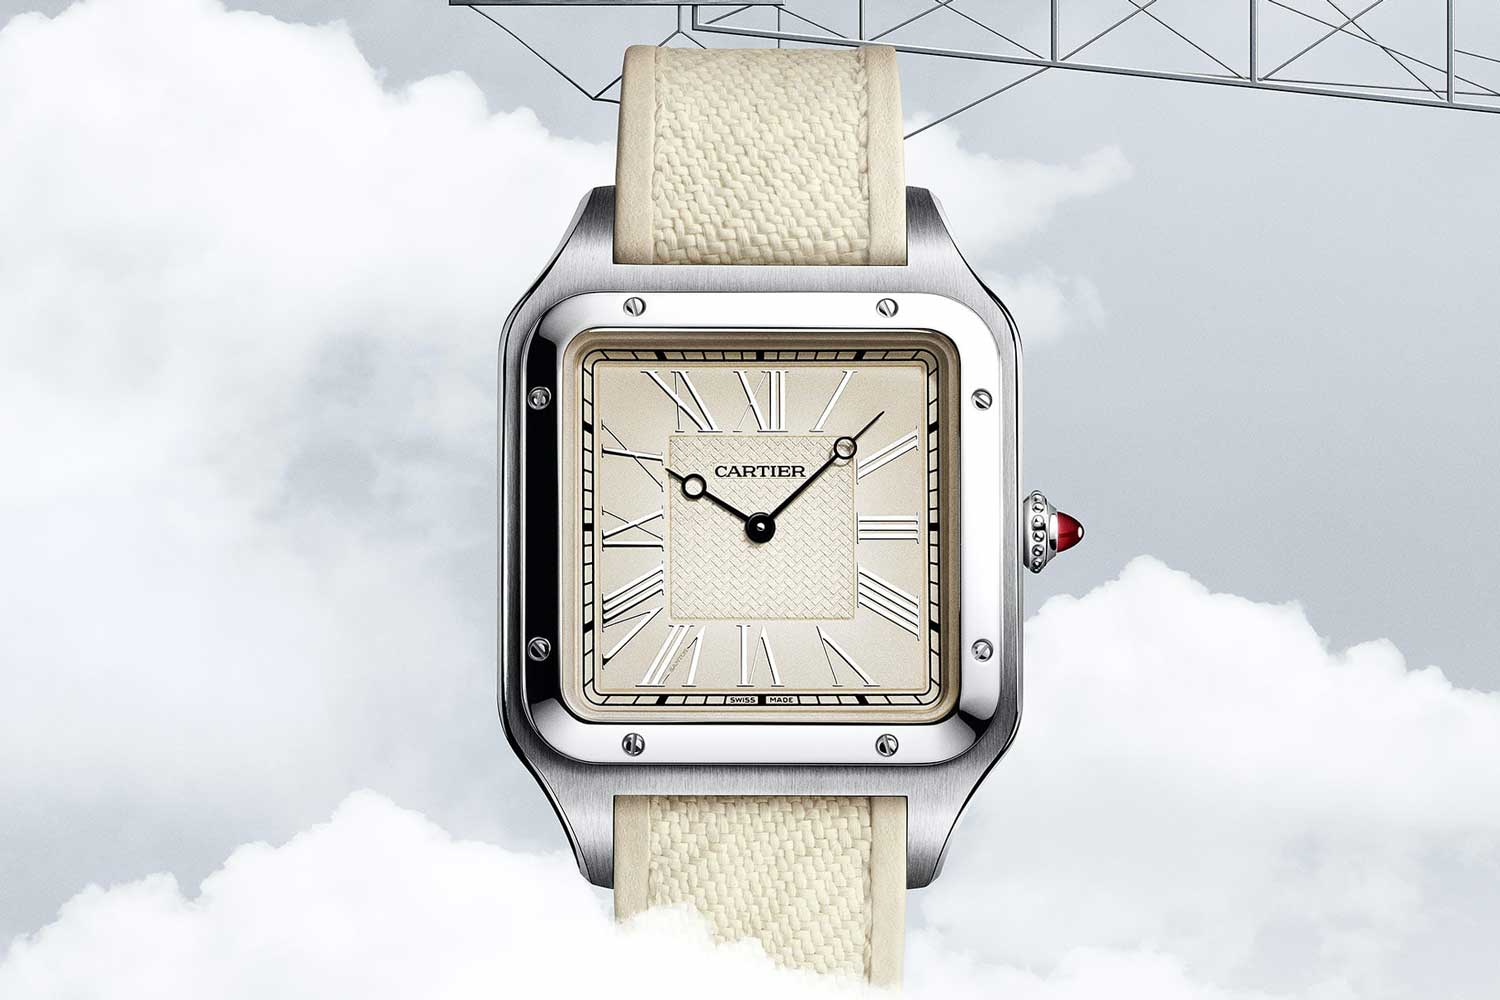 The Cartier Santos-Dumont La Demoiselle limited edition in platinum.